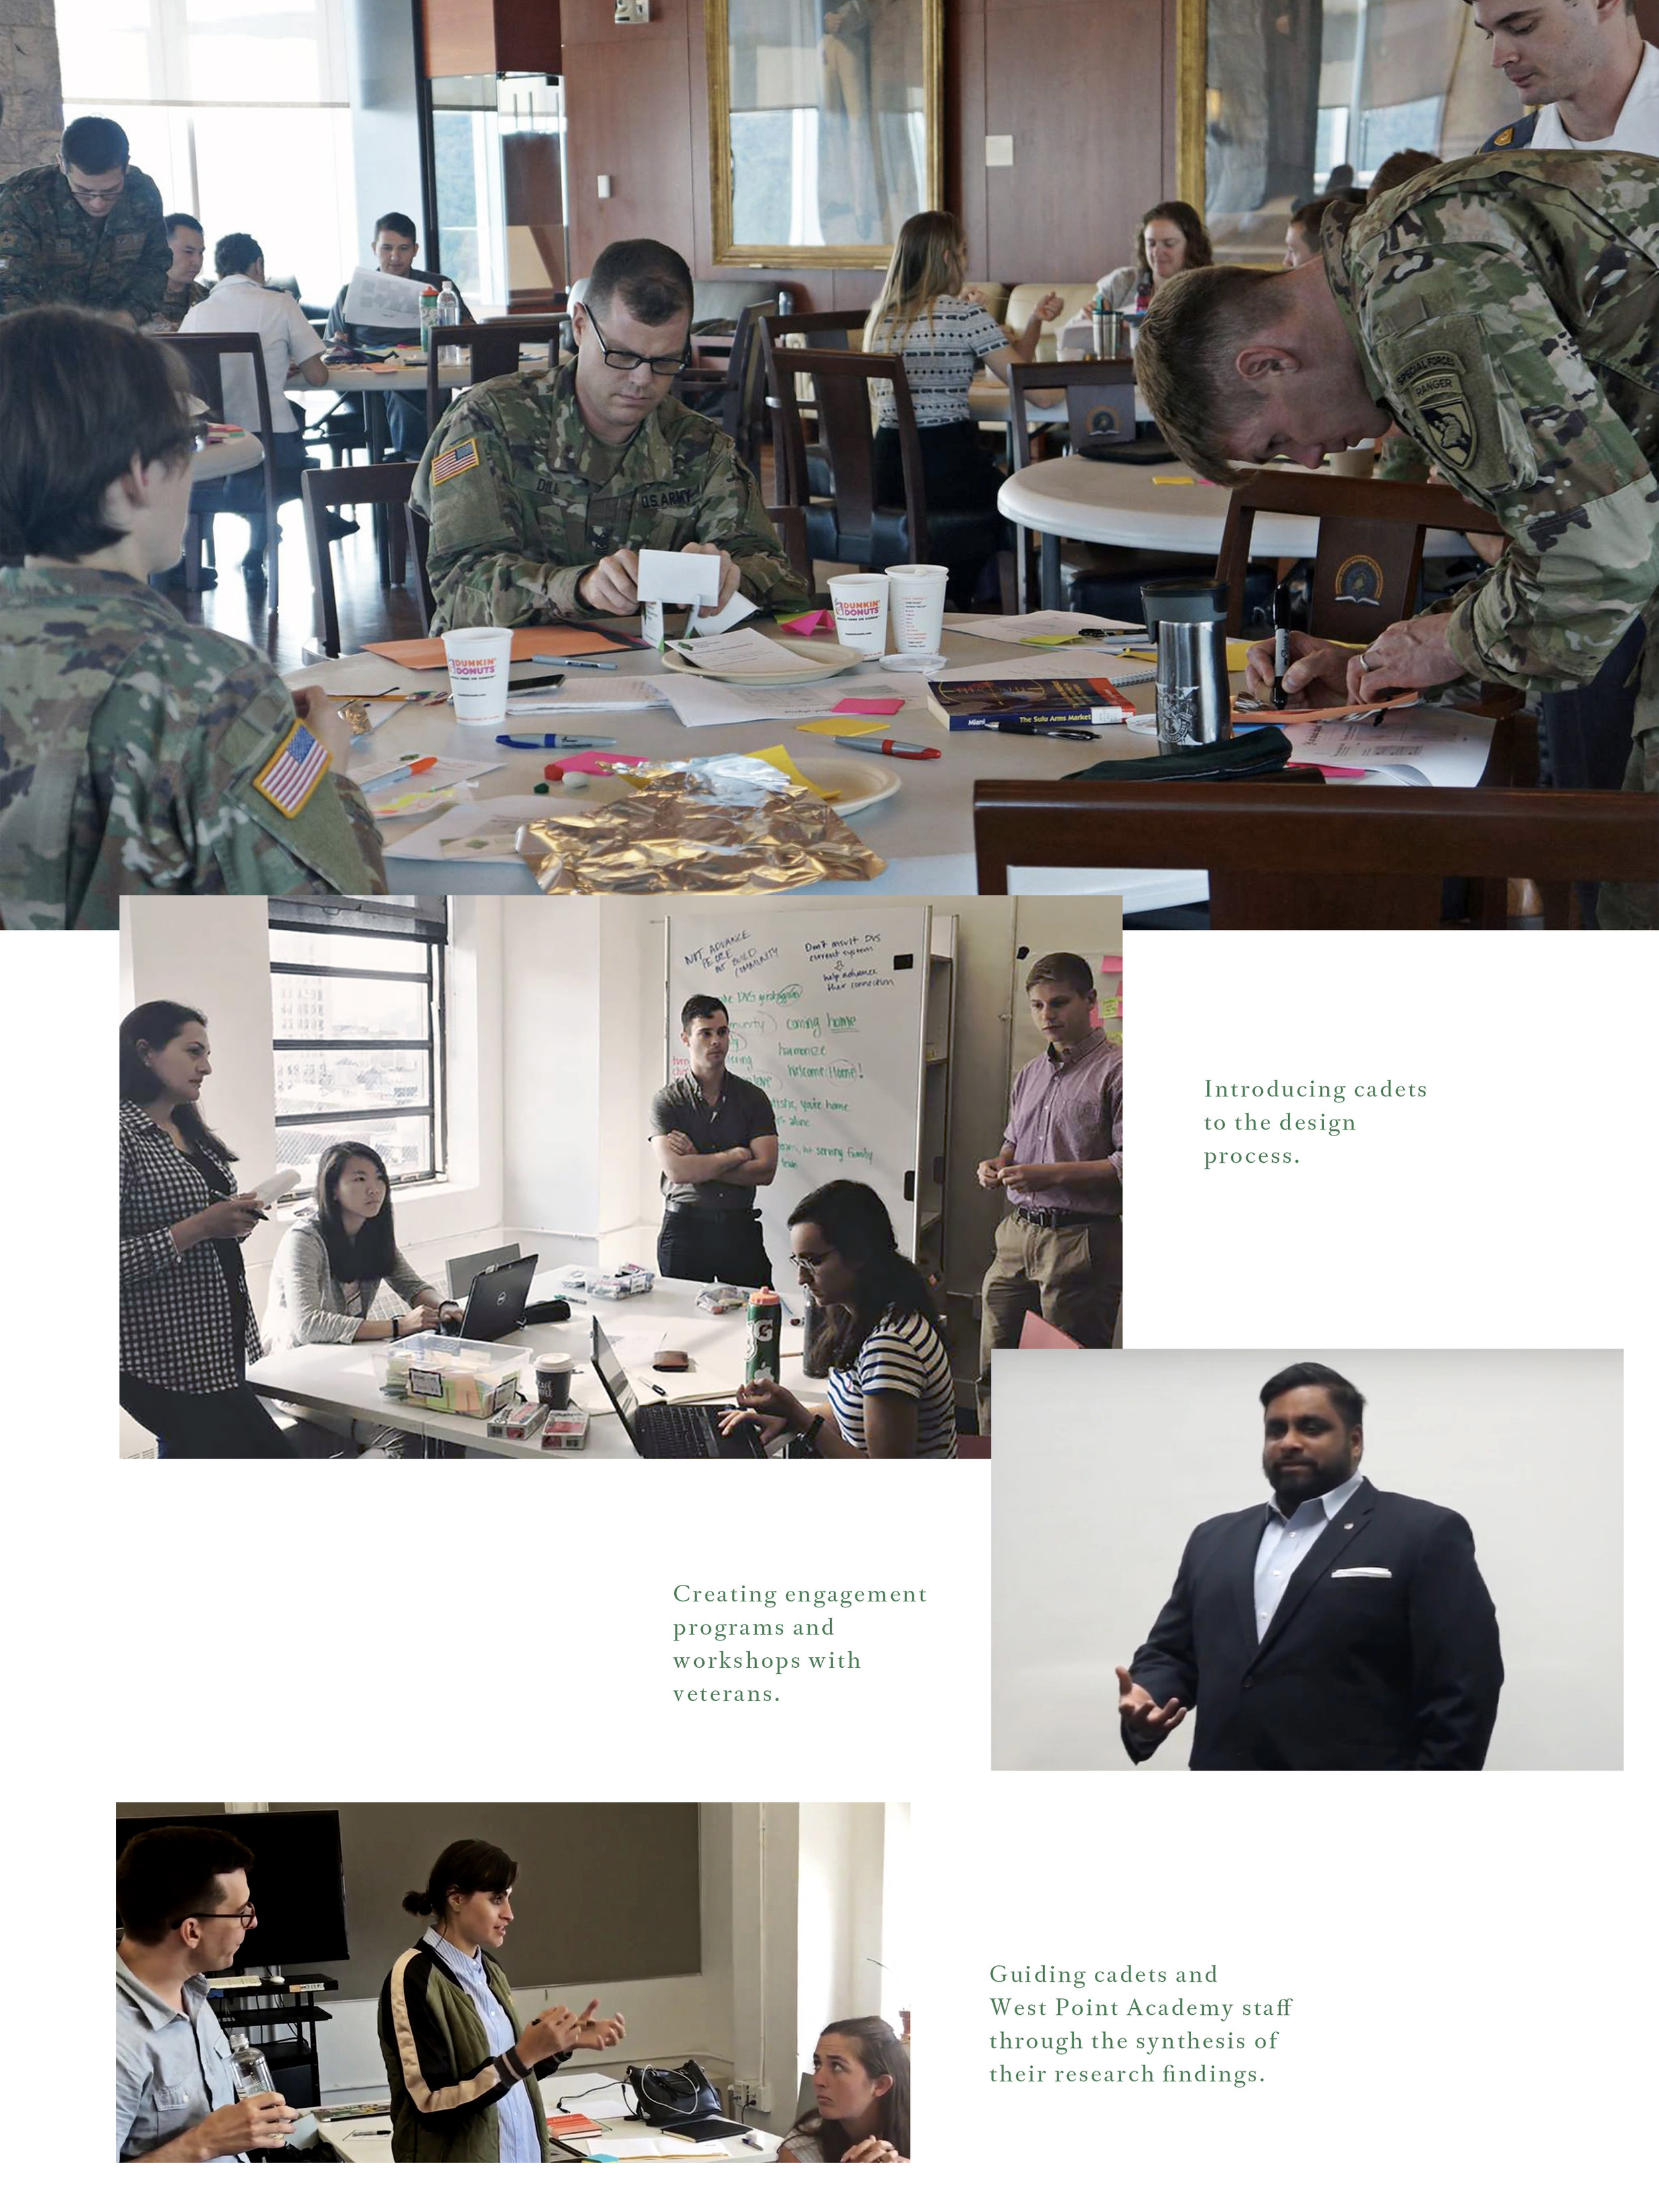 Design Workshop with Army Officers